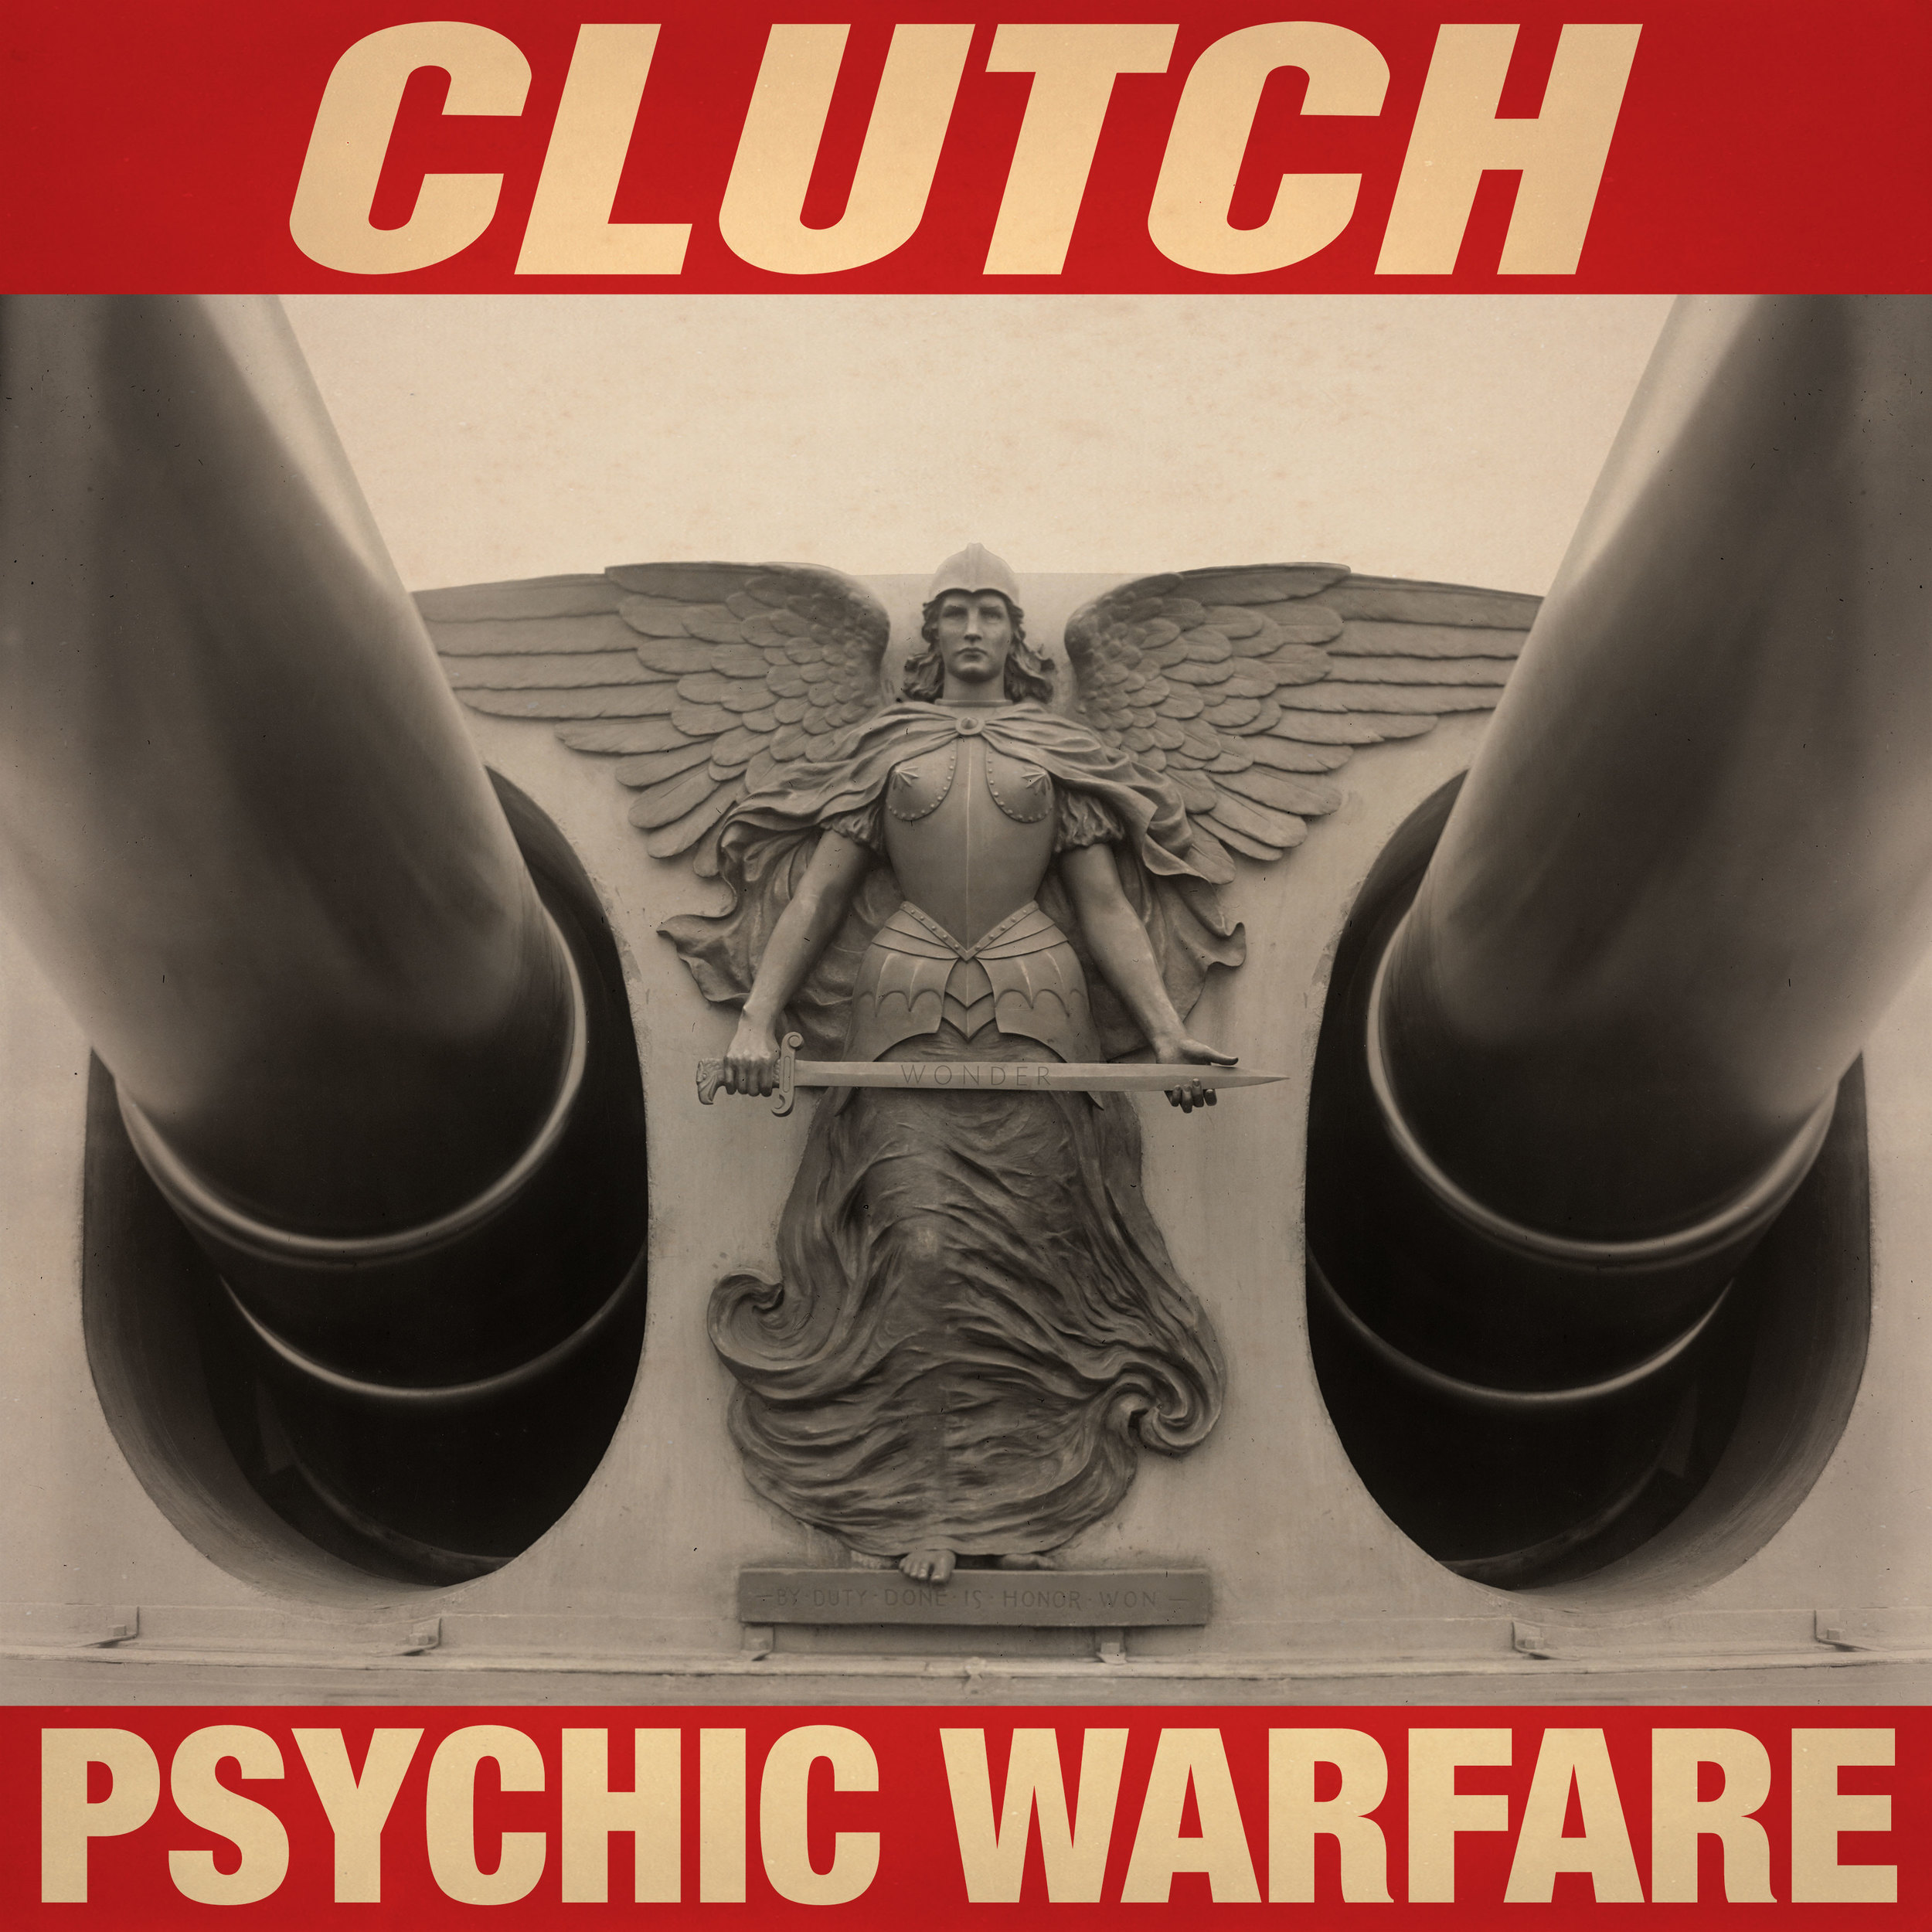 clutch-front-cover_v9 hi-res